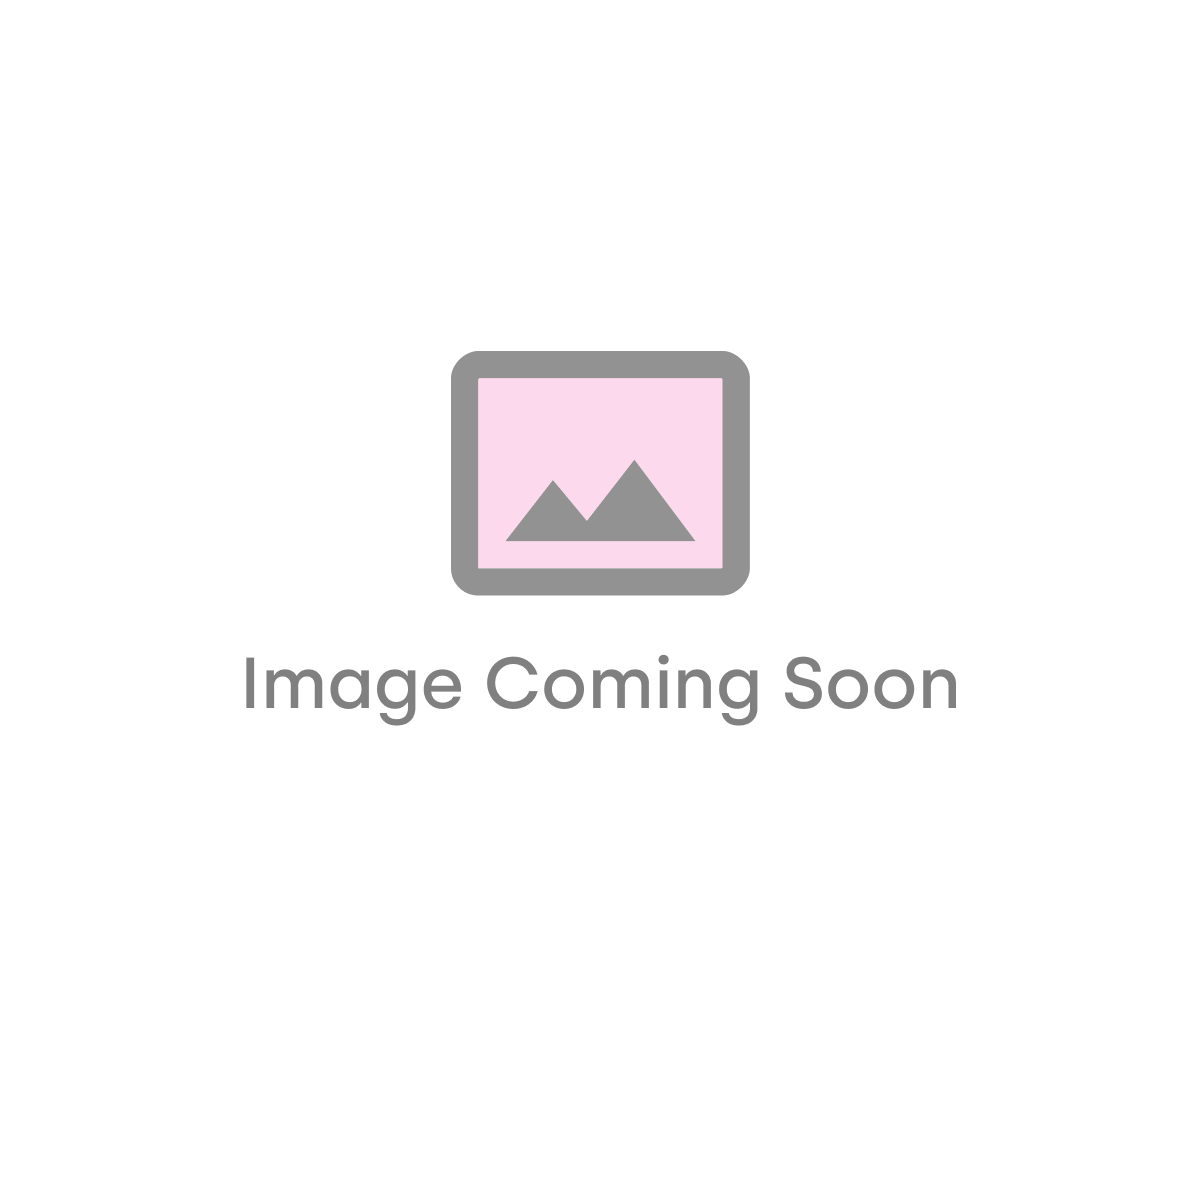 San Diego Oak 7mm Laminate Wooden Flooring - 2.47sqm per pack - 14102